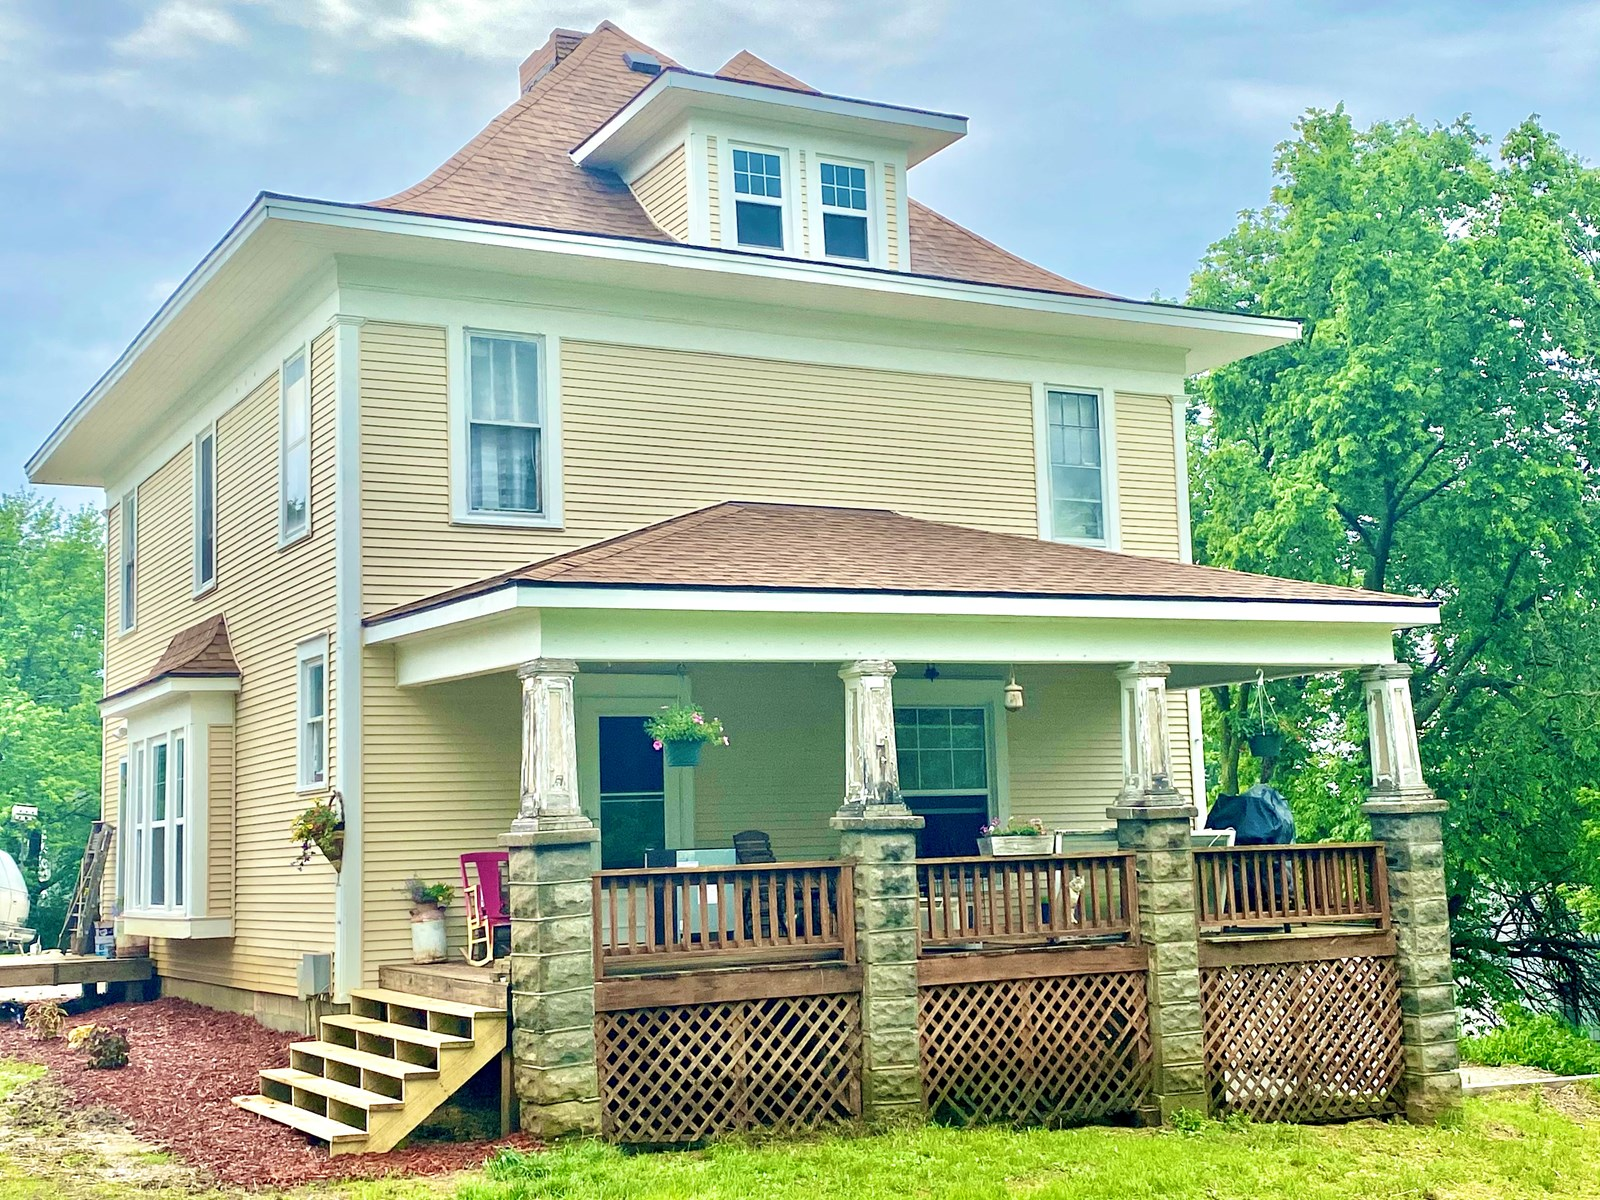 Large Classic Home on 2.3 Acres in Small NW MO Town